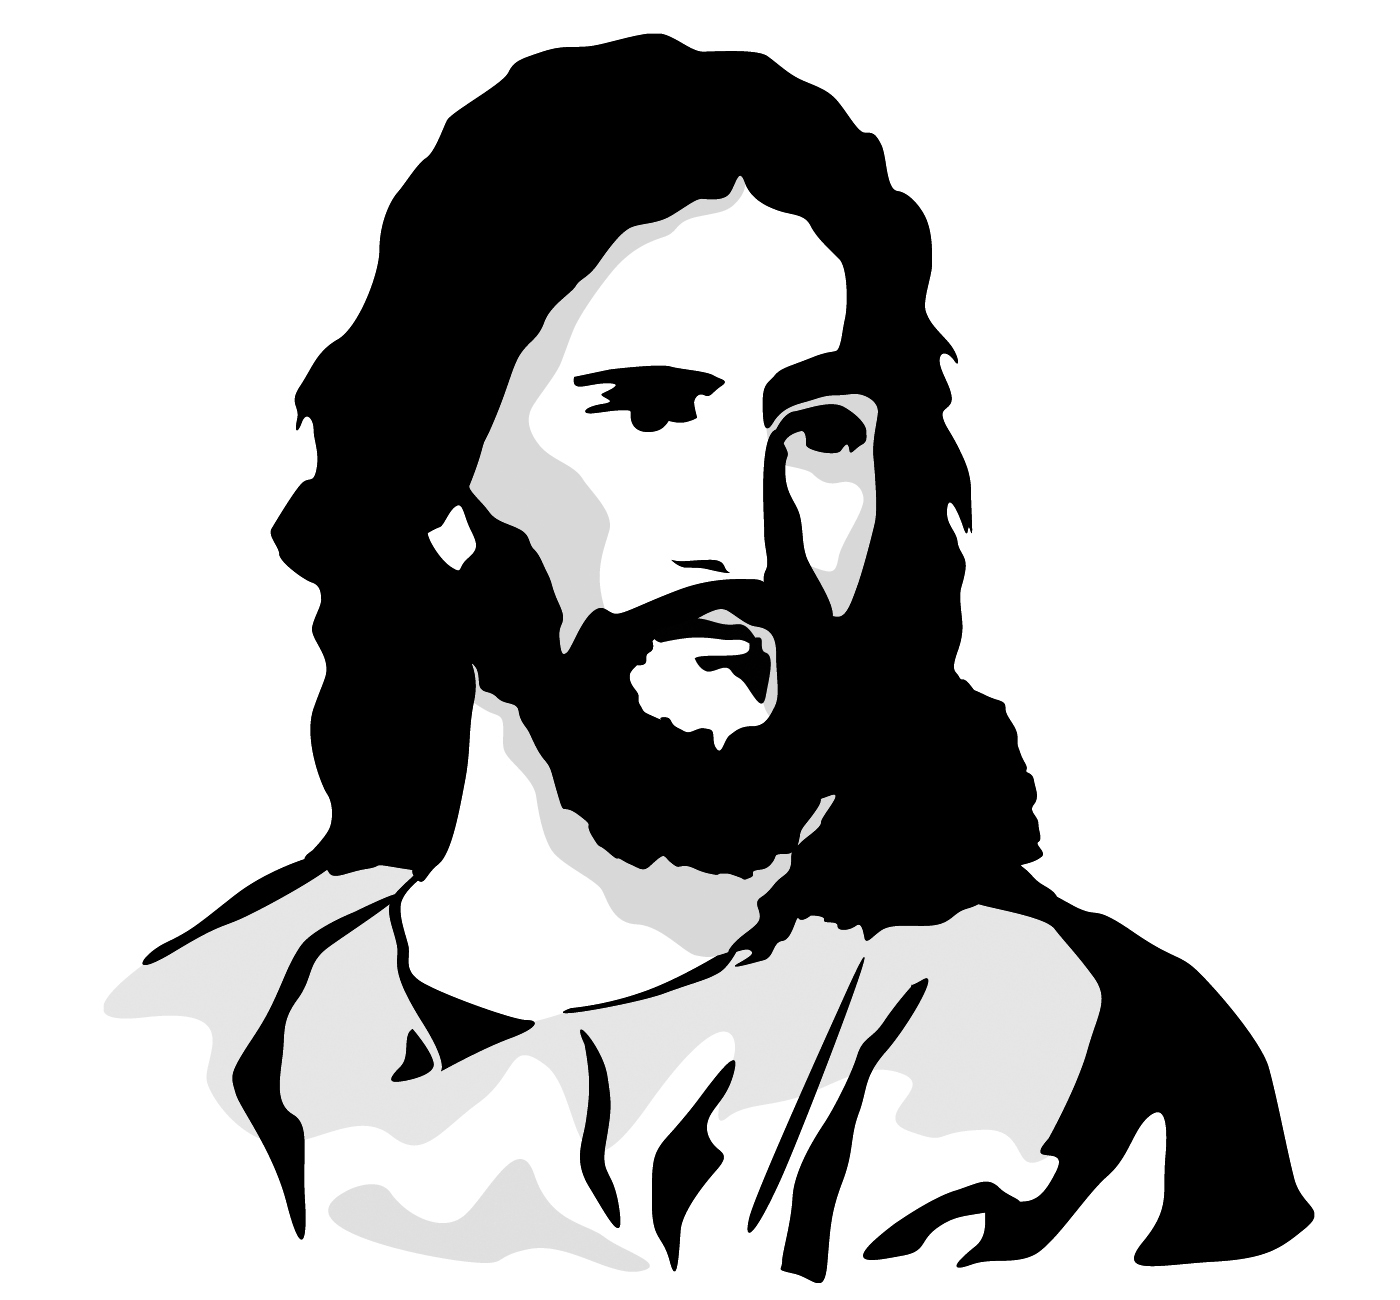 Christ Clipart - Cliparts.co